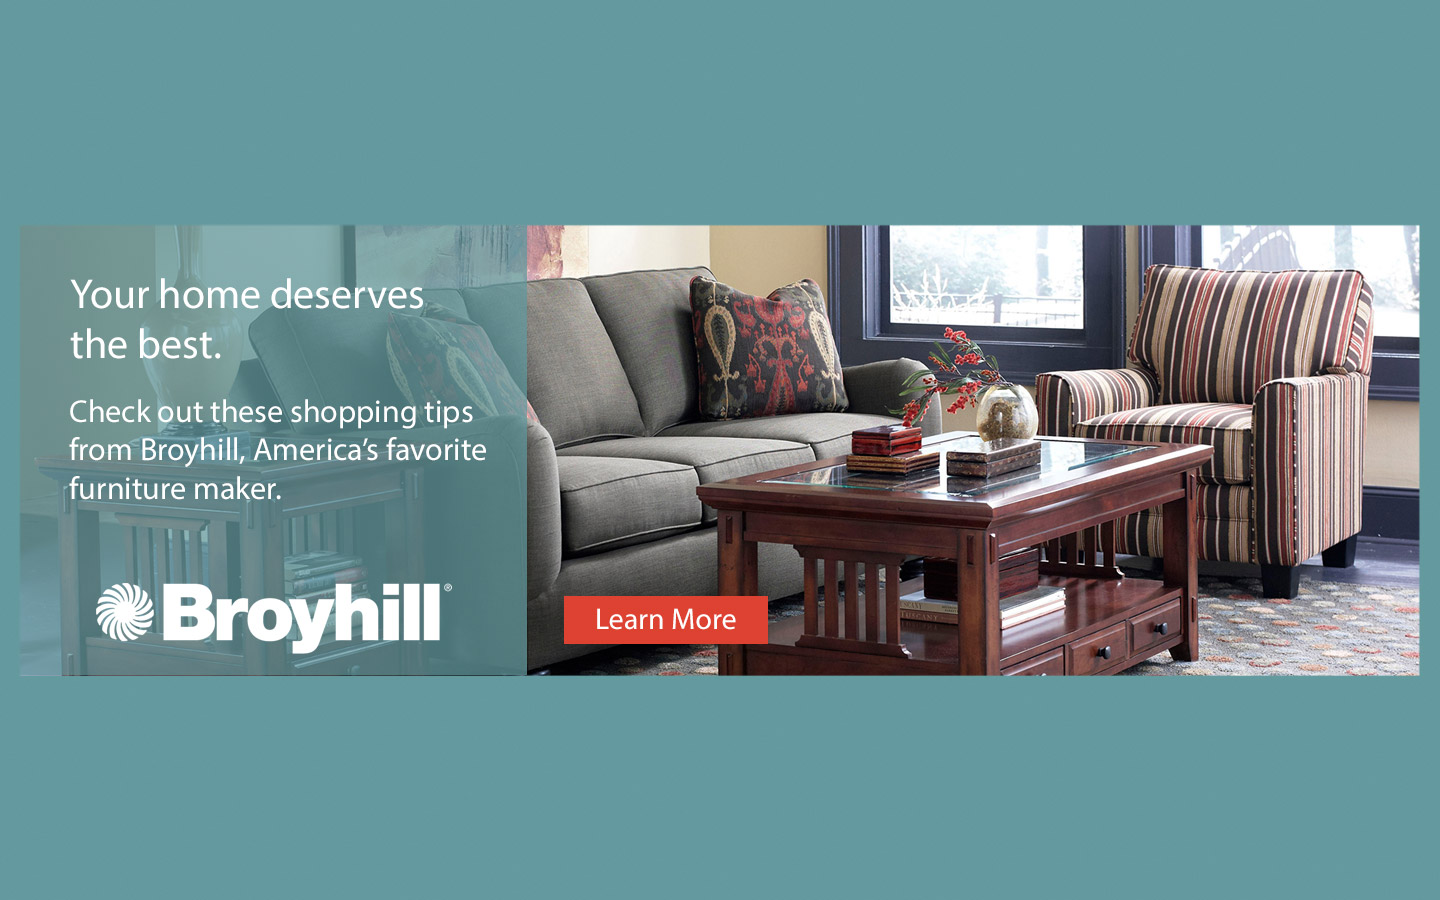 ... Furniture Center Broyhill Wood And Upholstery Shopping Tips Q2 2017 ...